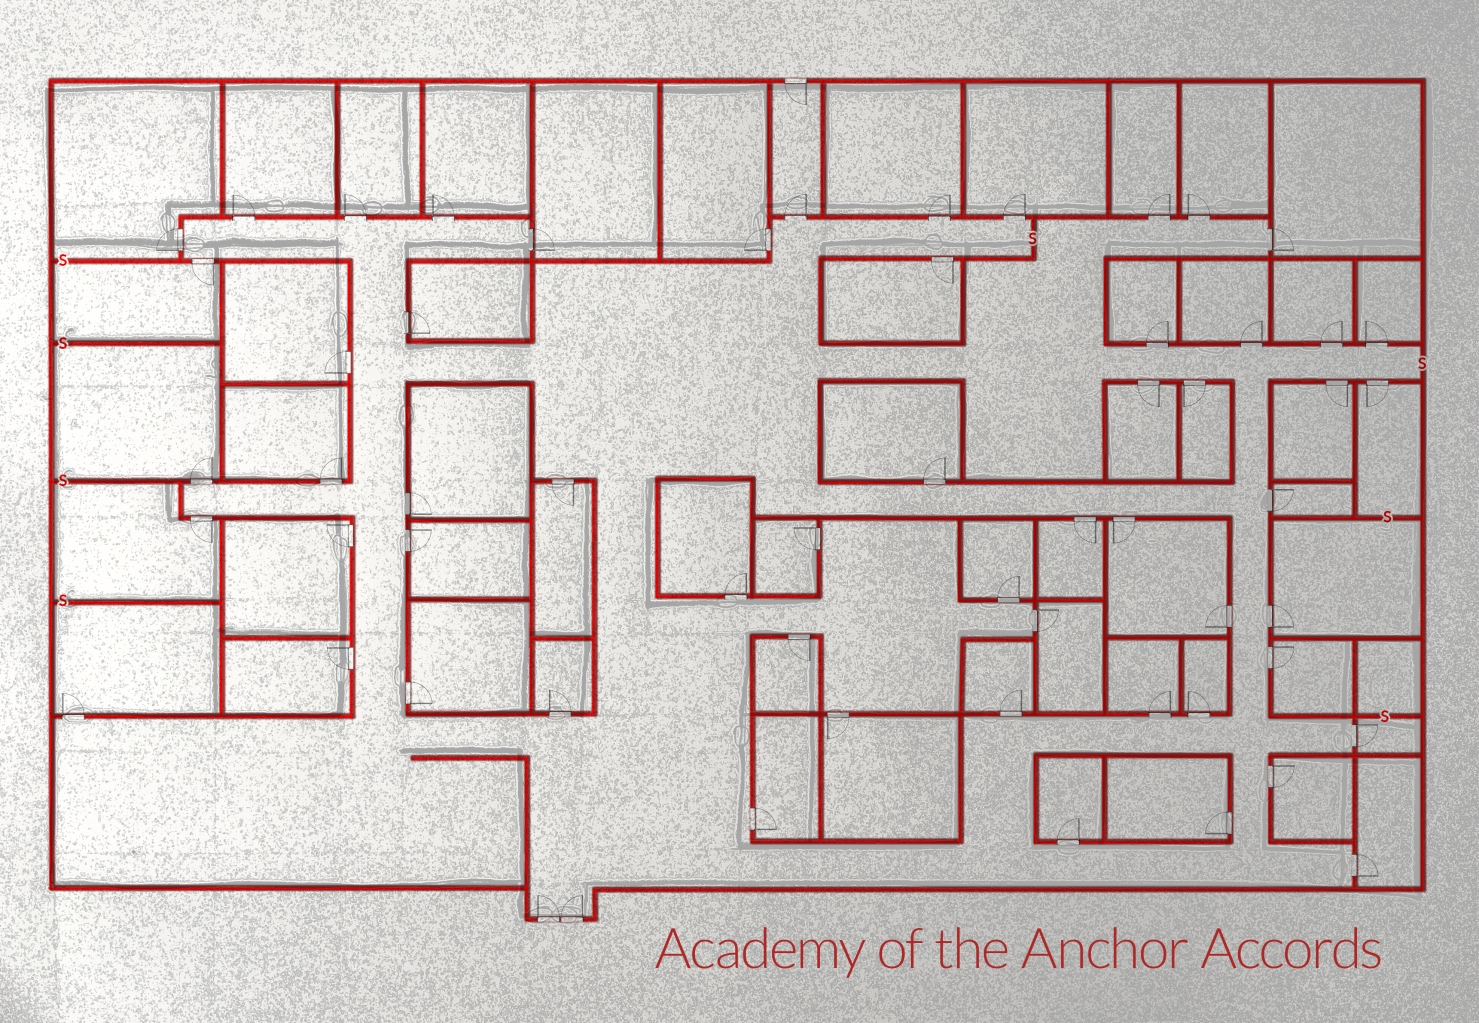 Floor plan of the Academy of the Anchor Accords